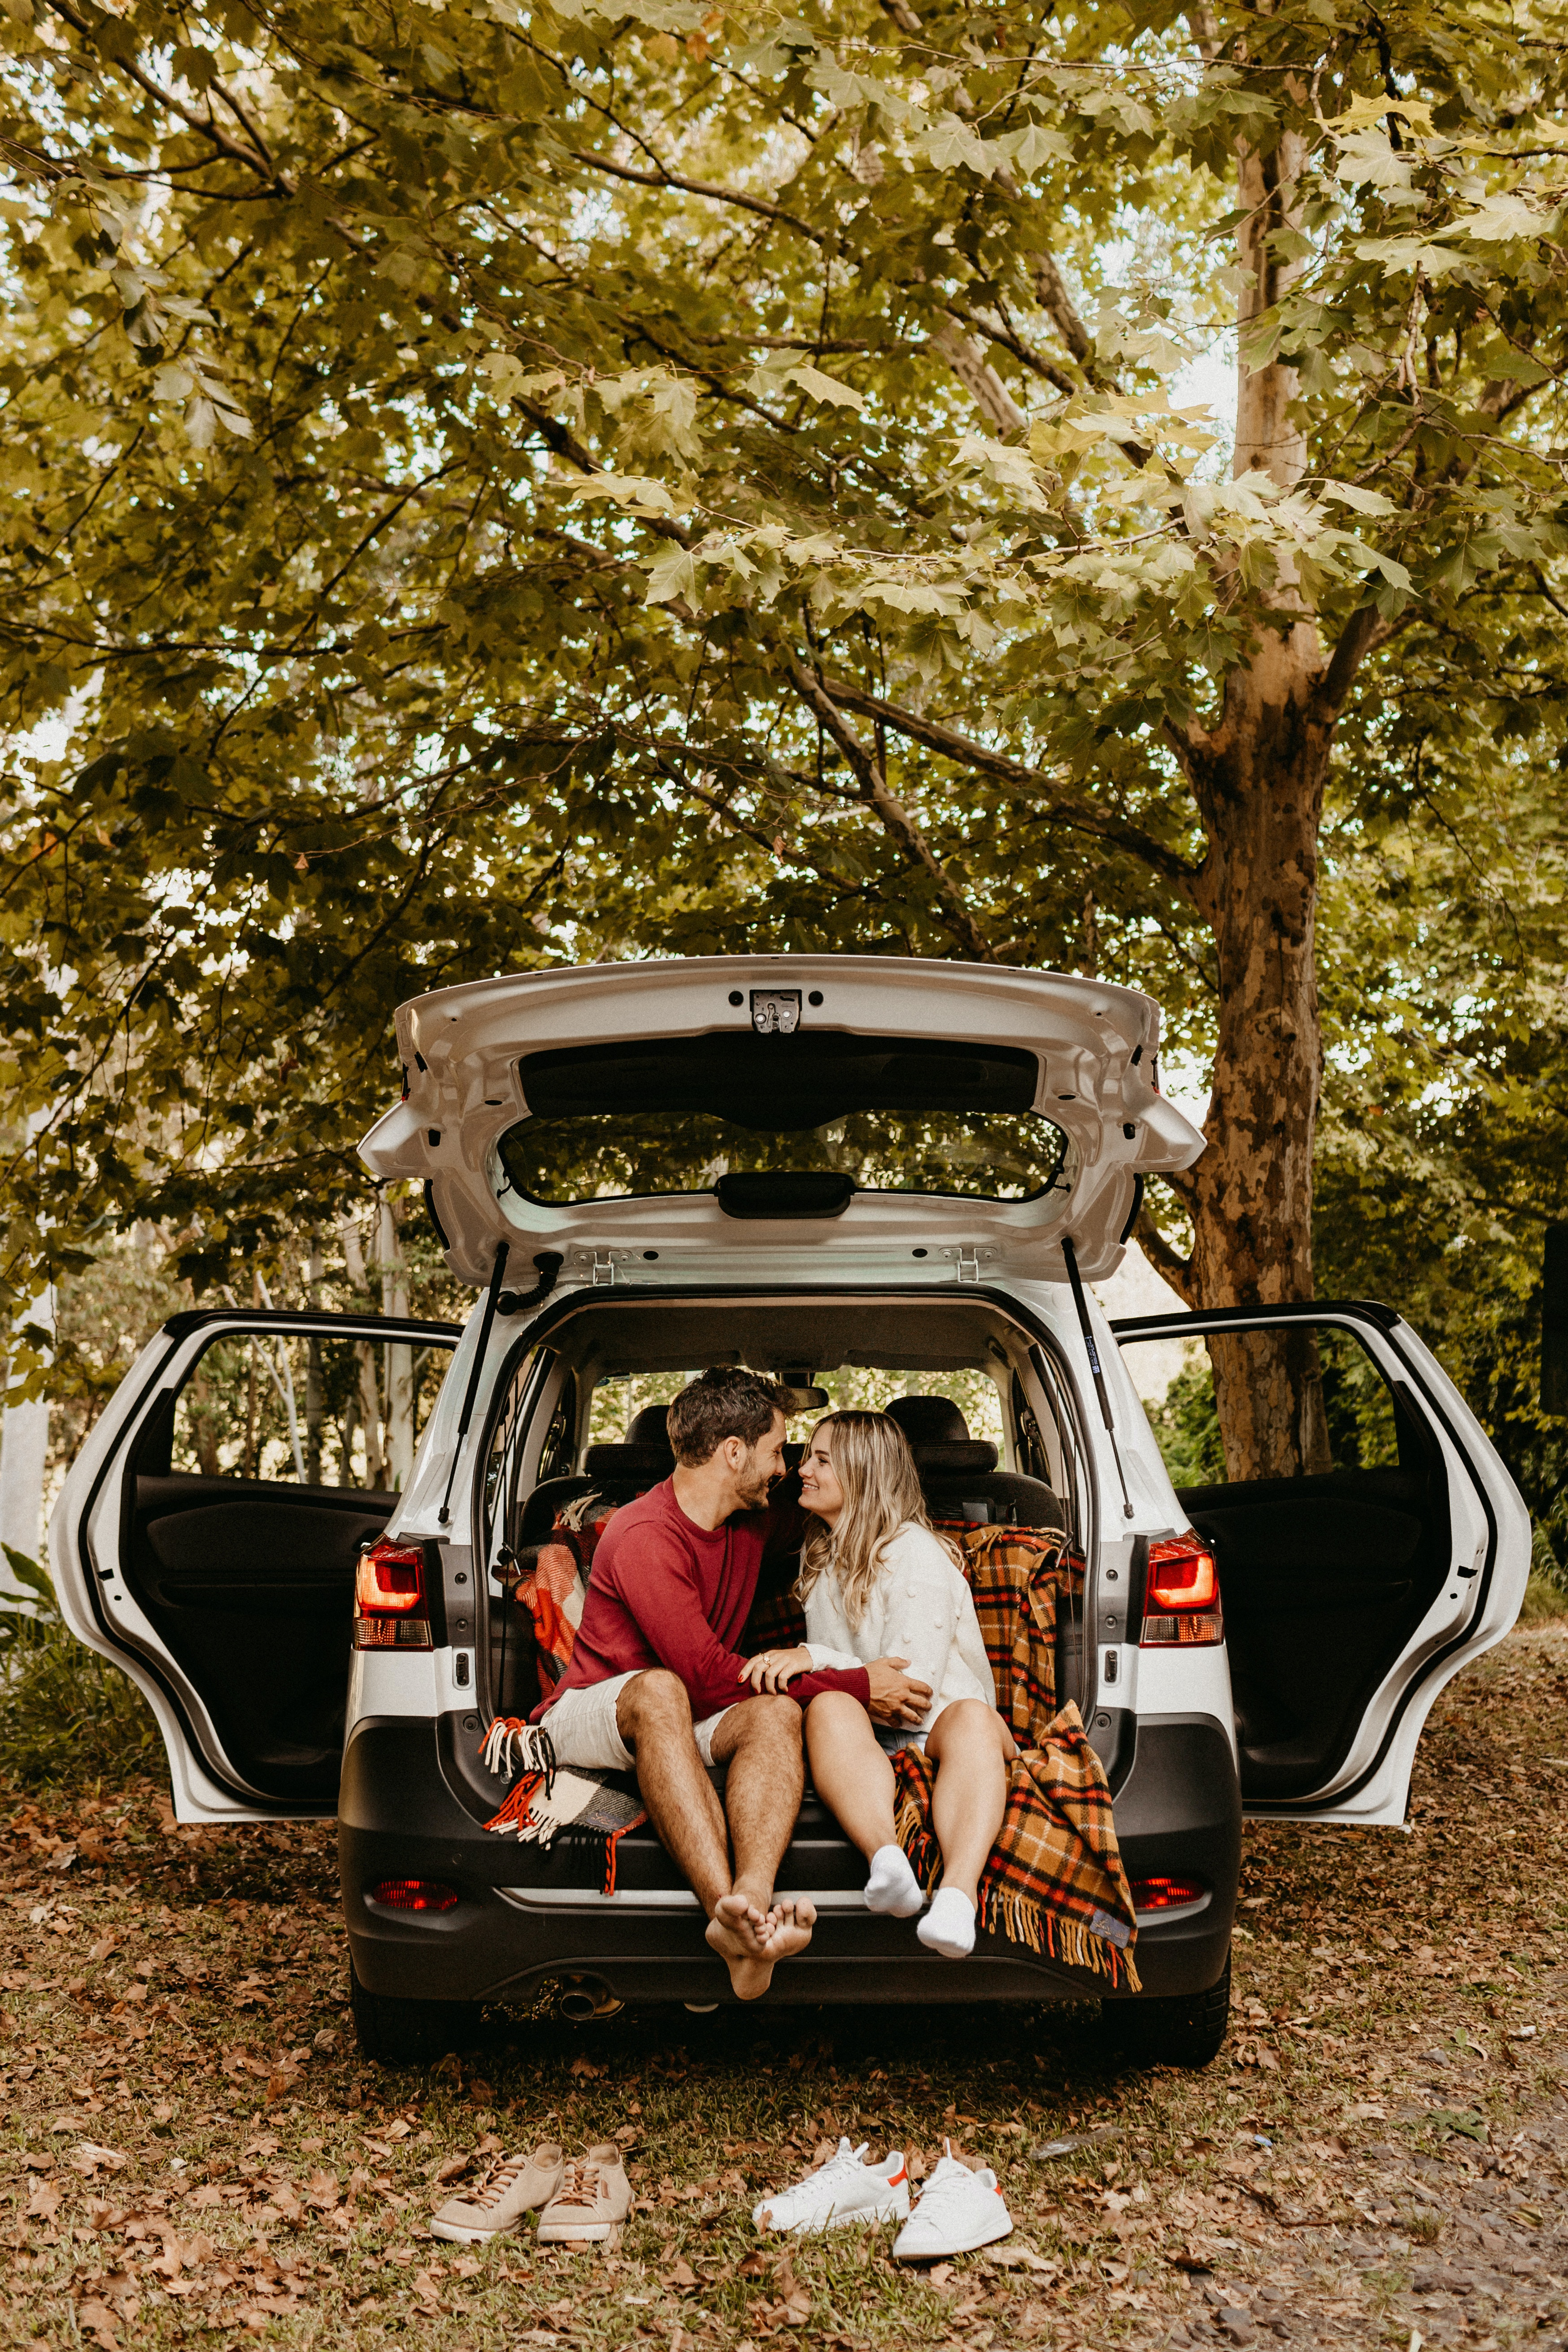 Couple sitting in the back of the car.   Photo: Pexels